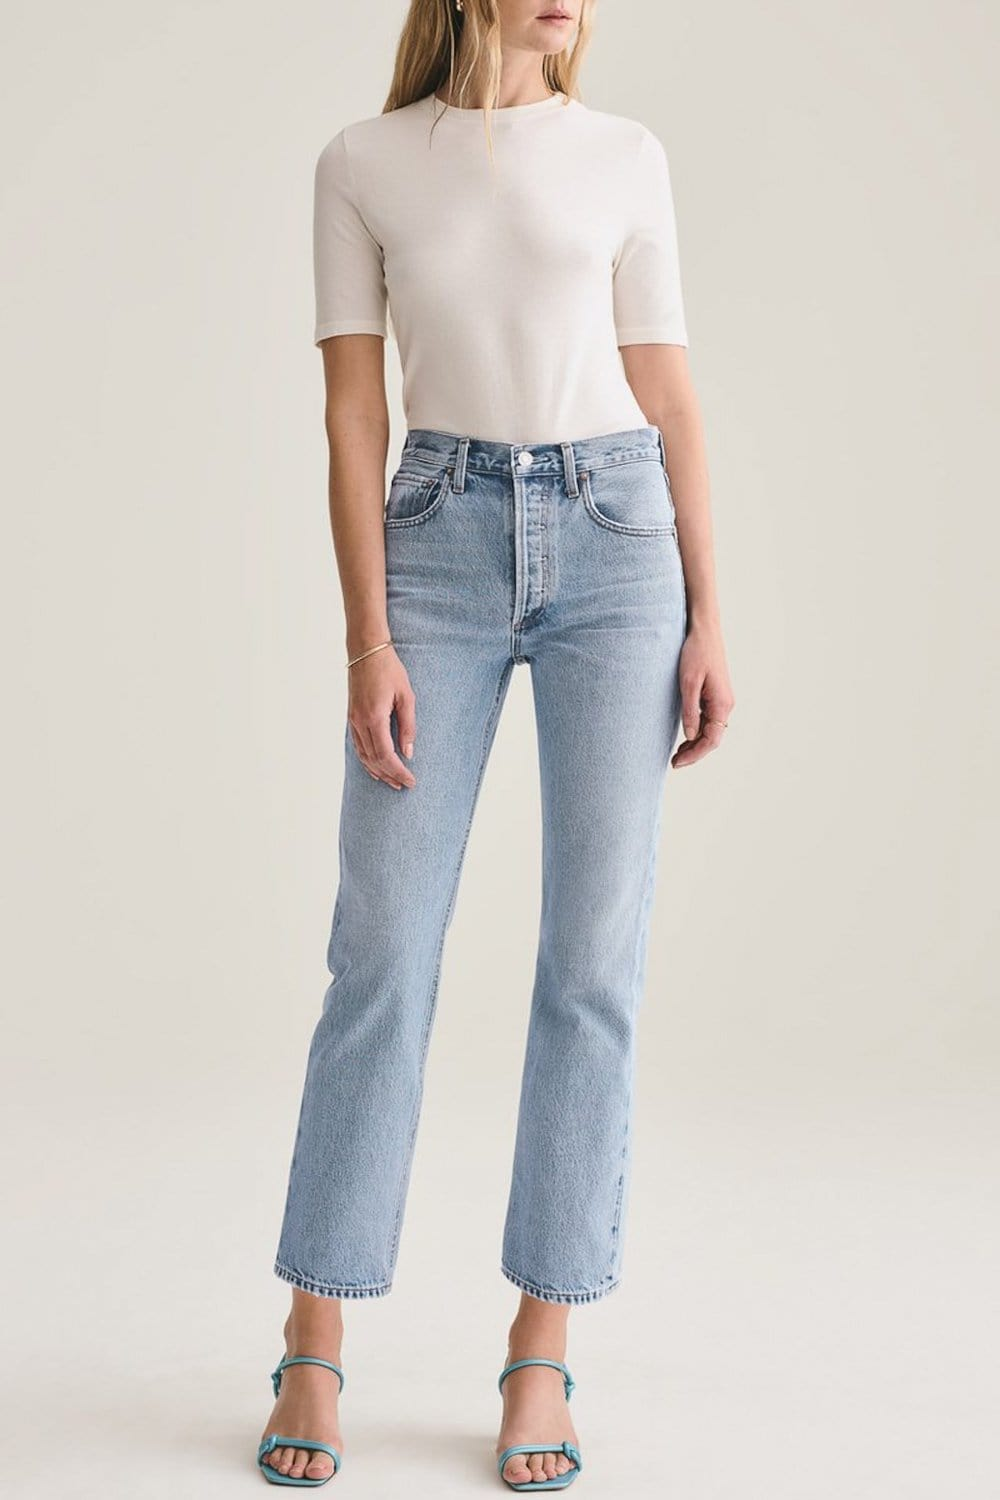 Ripley Mid Rise Straight Jean